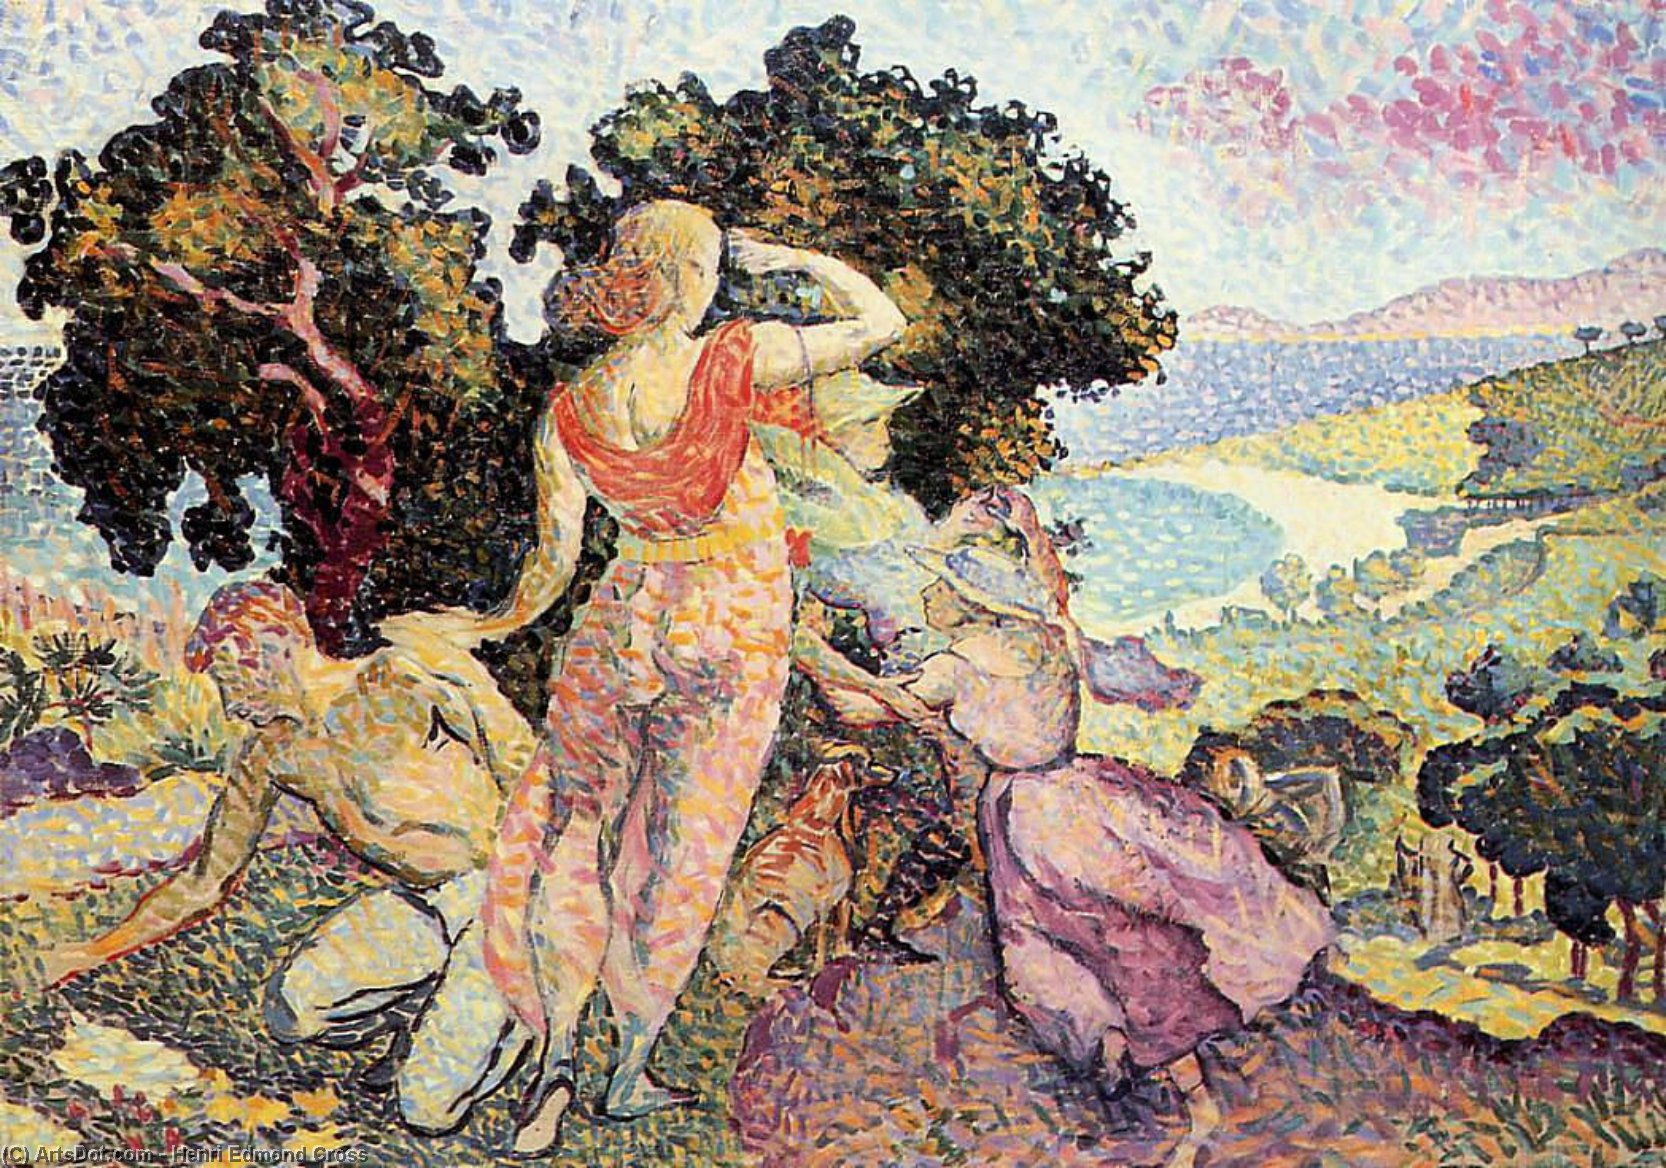 Estudo para Excuirsion, óleo sobre tela por Henri Edmond Cross (1856-1910, France)